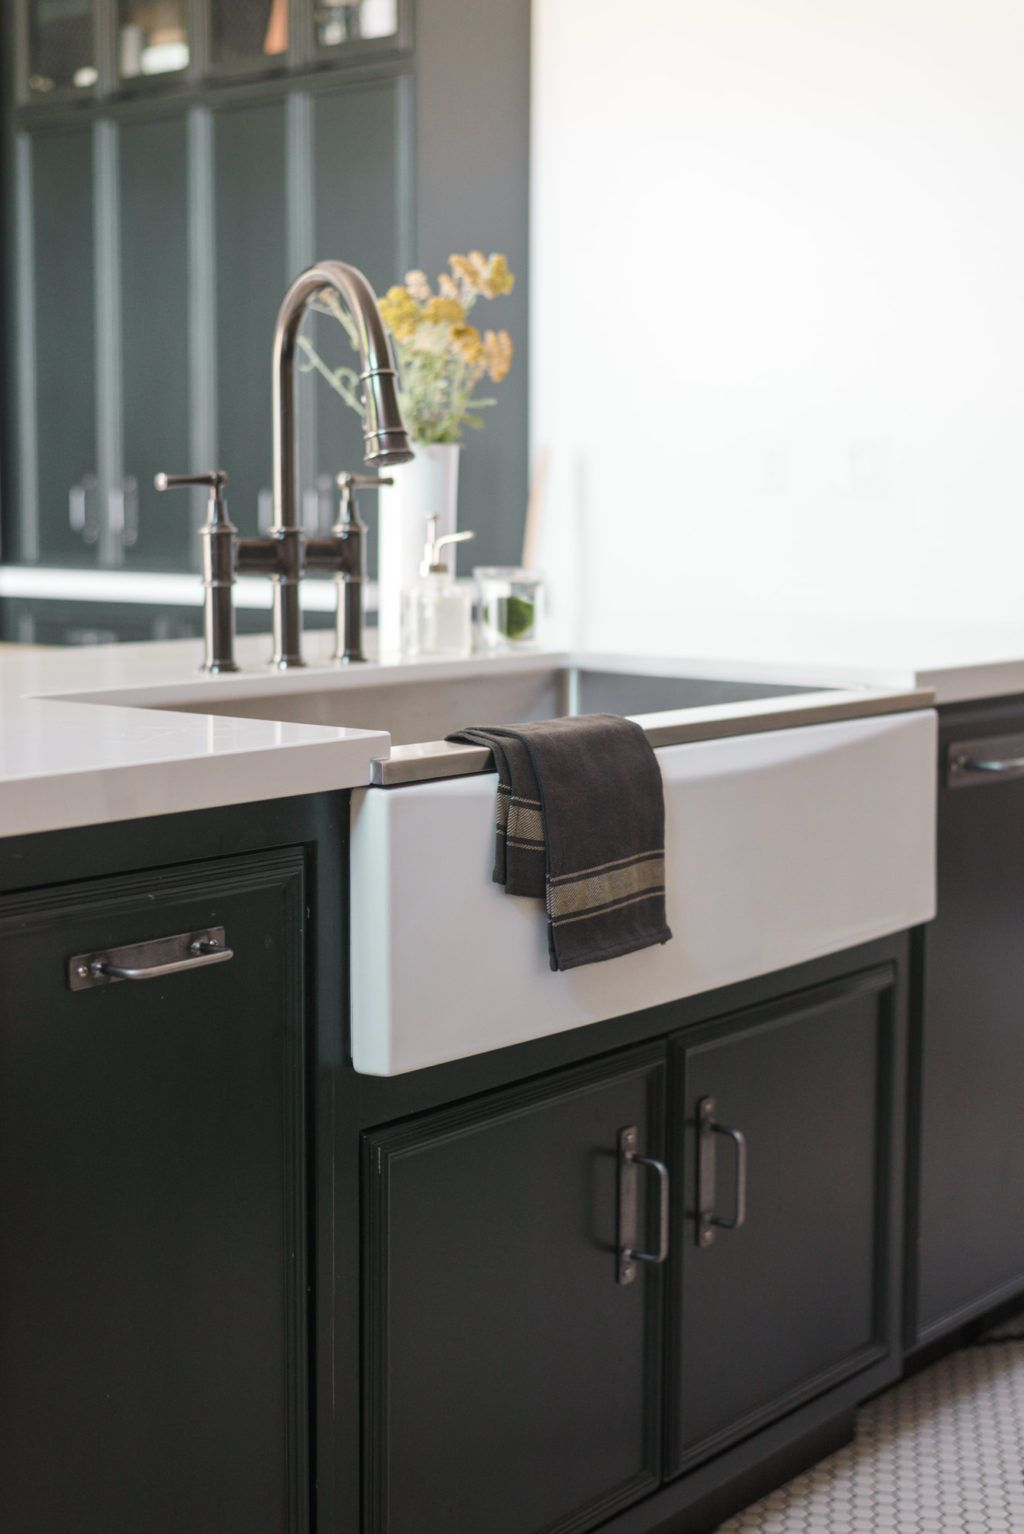 The Kitchen Sink That You Can Change On